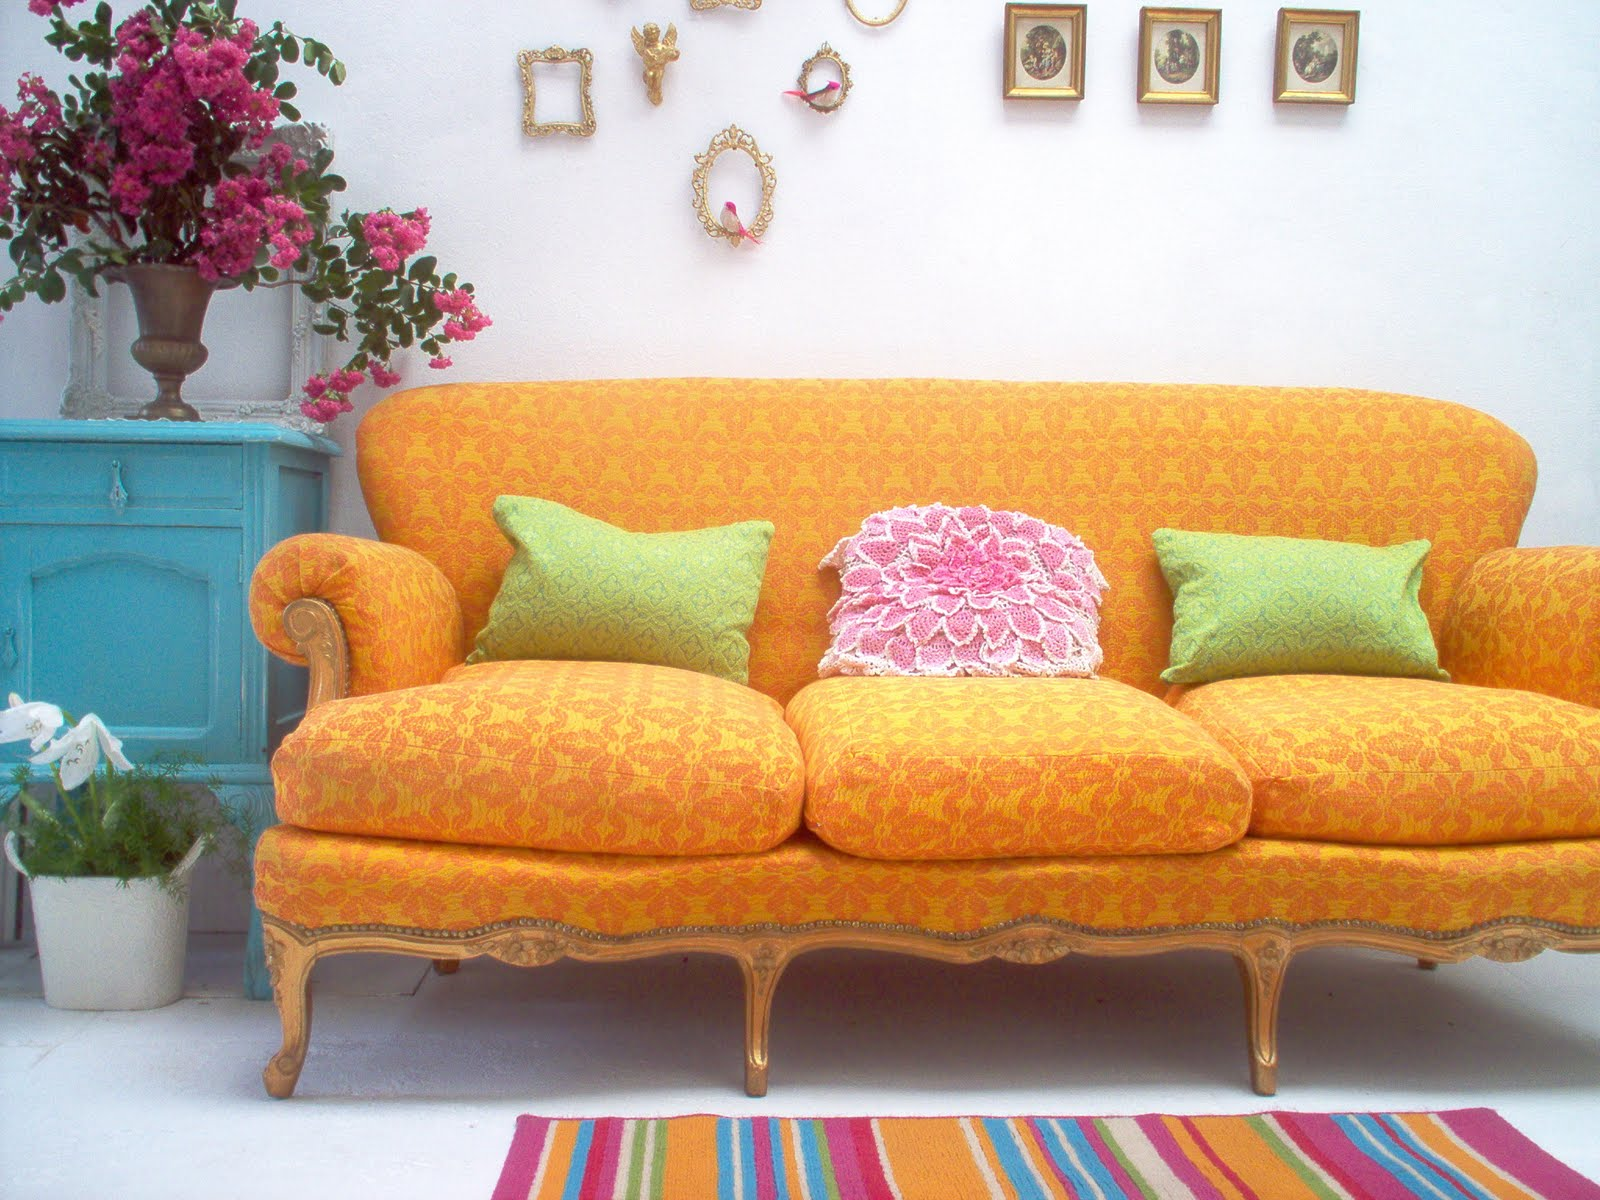 Theme inspiration decor ideas in yellow and orange for Fabrica de sillones zona oeste